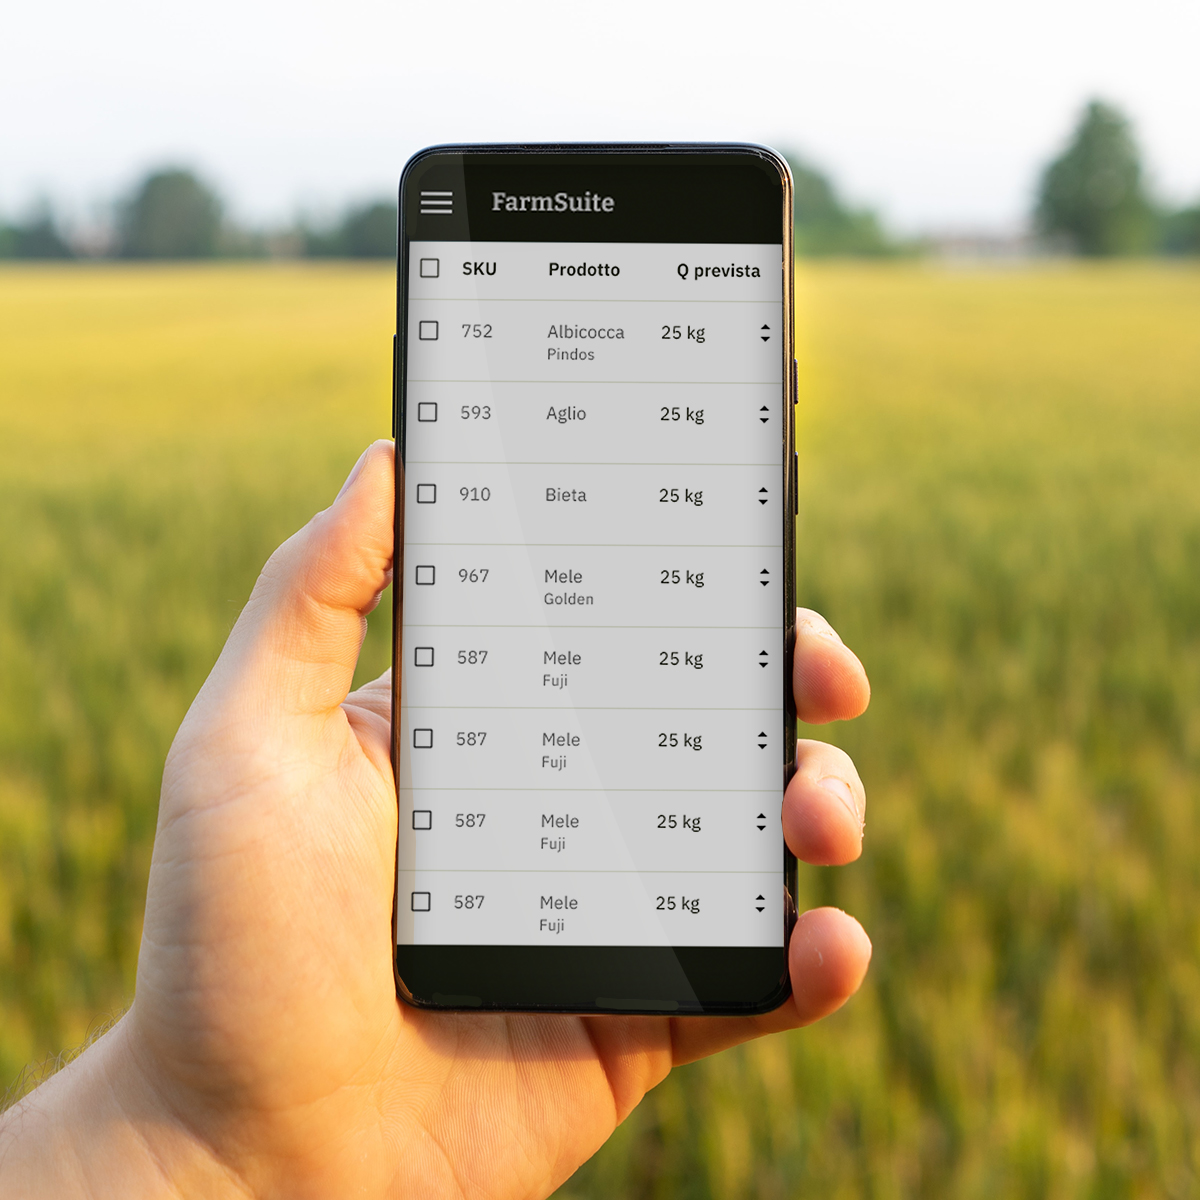 FarmSuite - a platform co-created with farmers to answer their needs